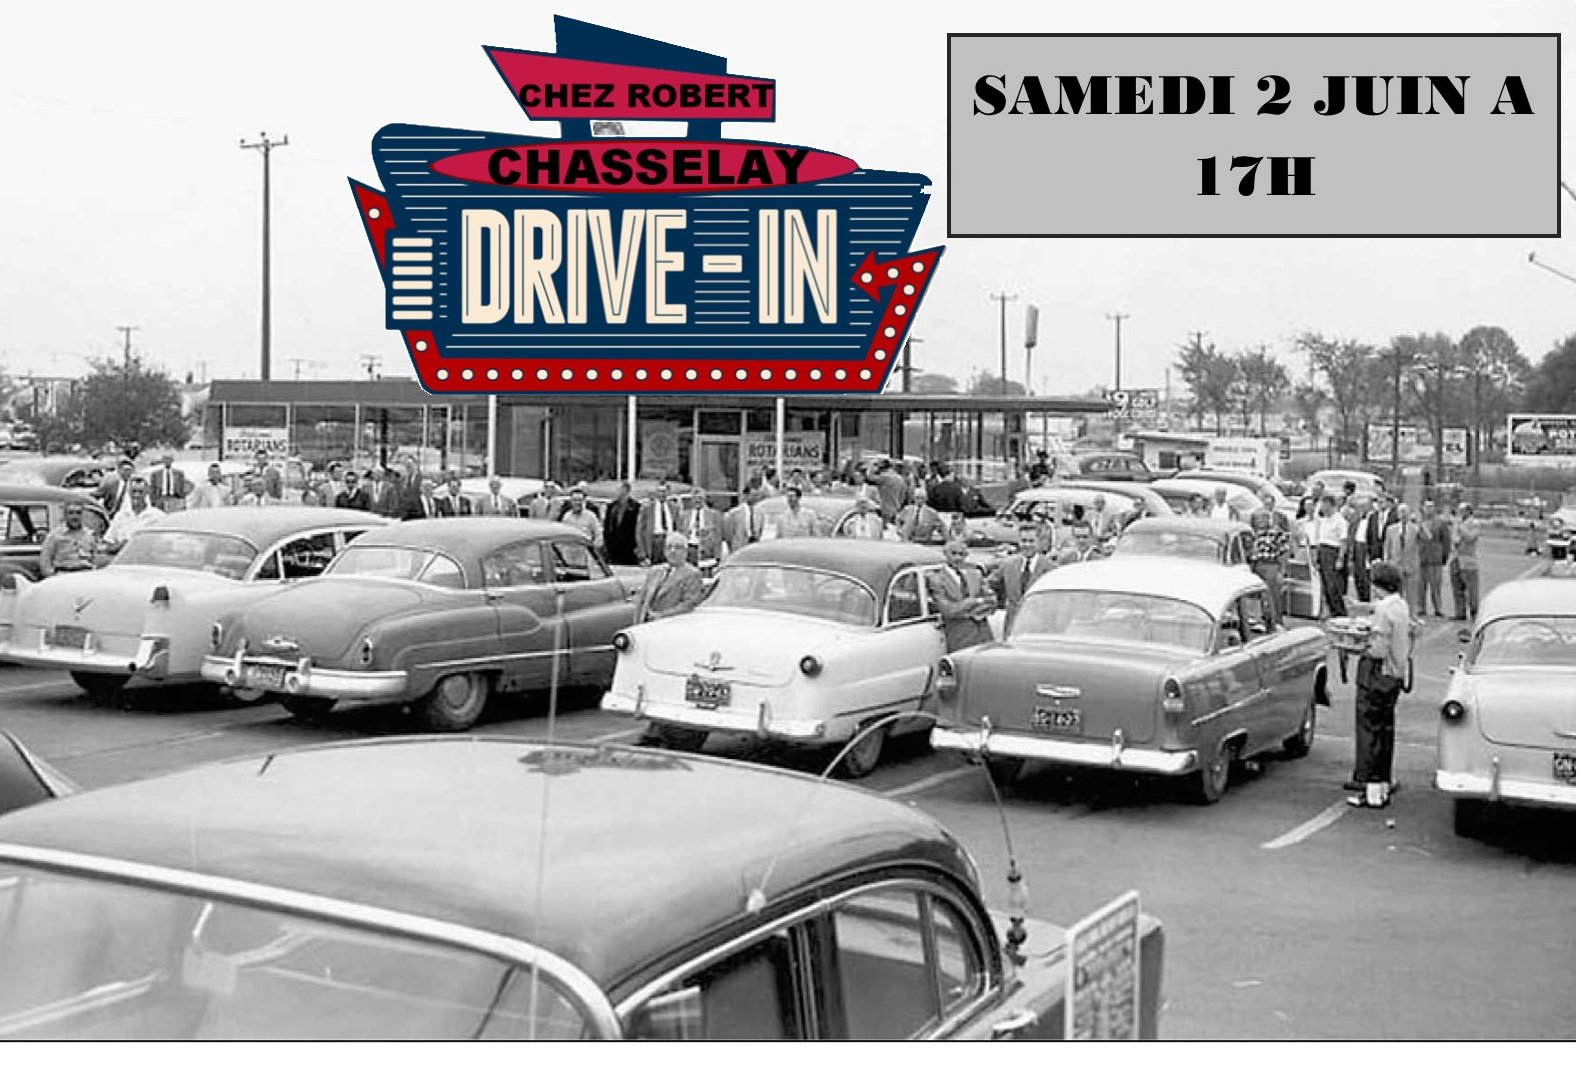 """""""DRIVE-IN"""" à CHASSELAY (69380)"""